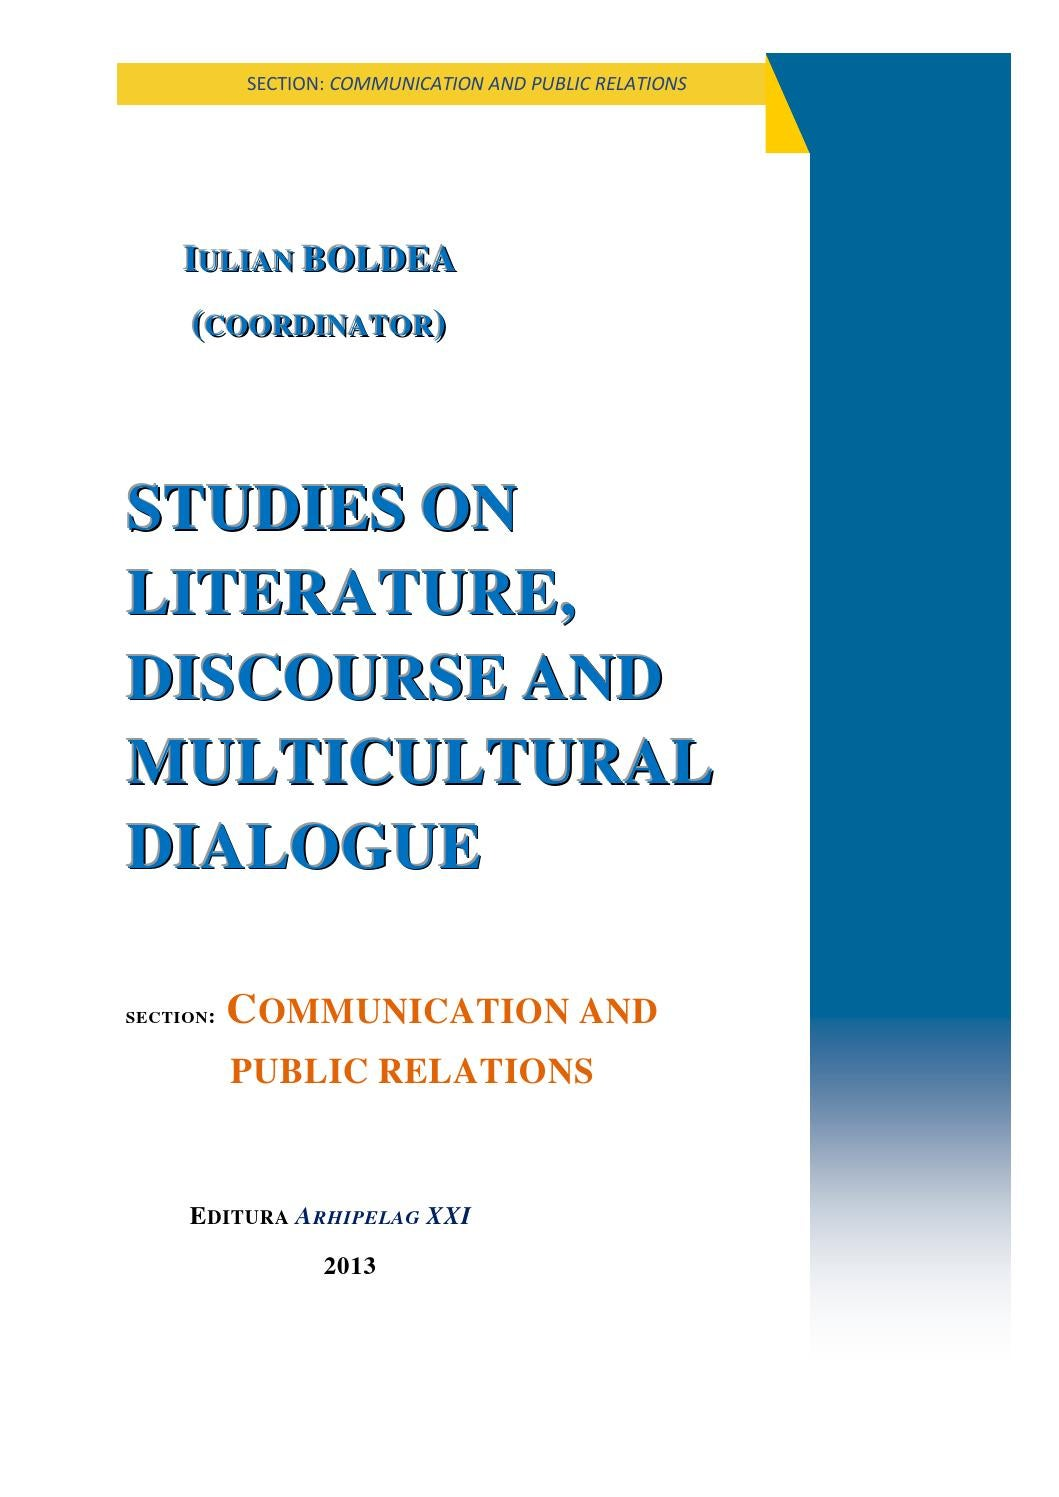 Iulian Boldea (coordinator), Studies on Literature